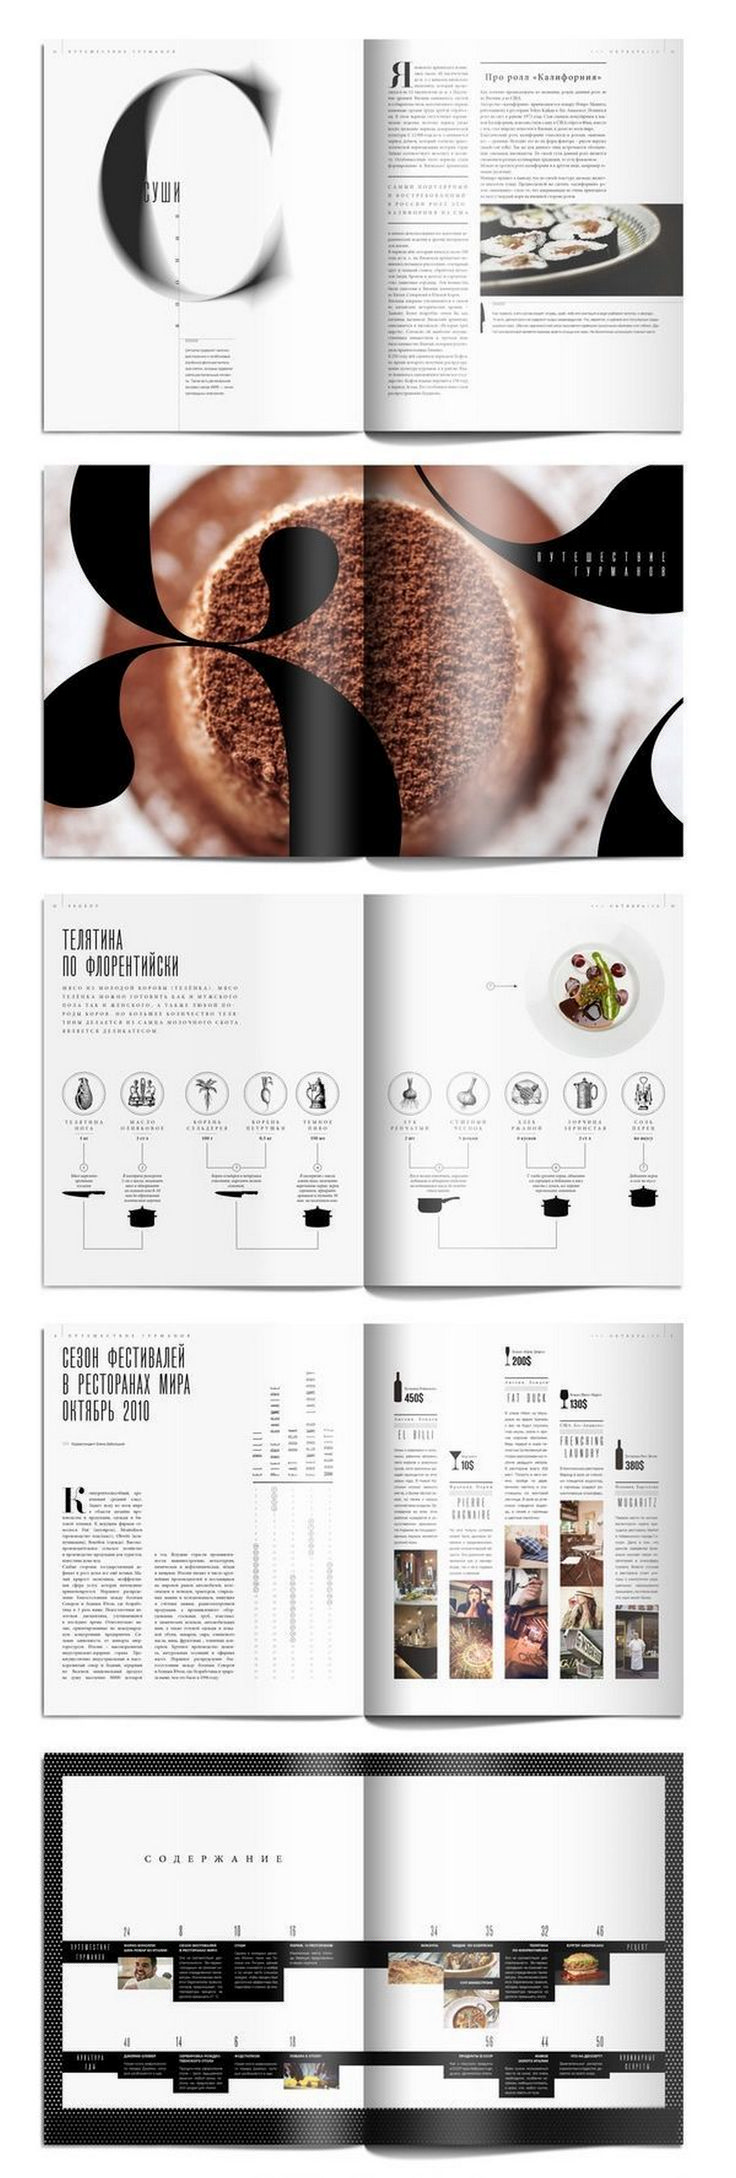 How to Get Started with Magazine Layout Design